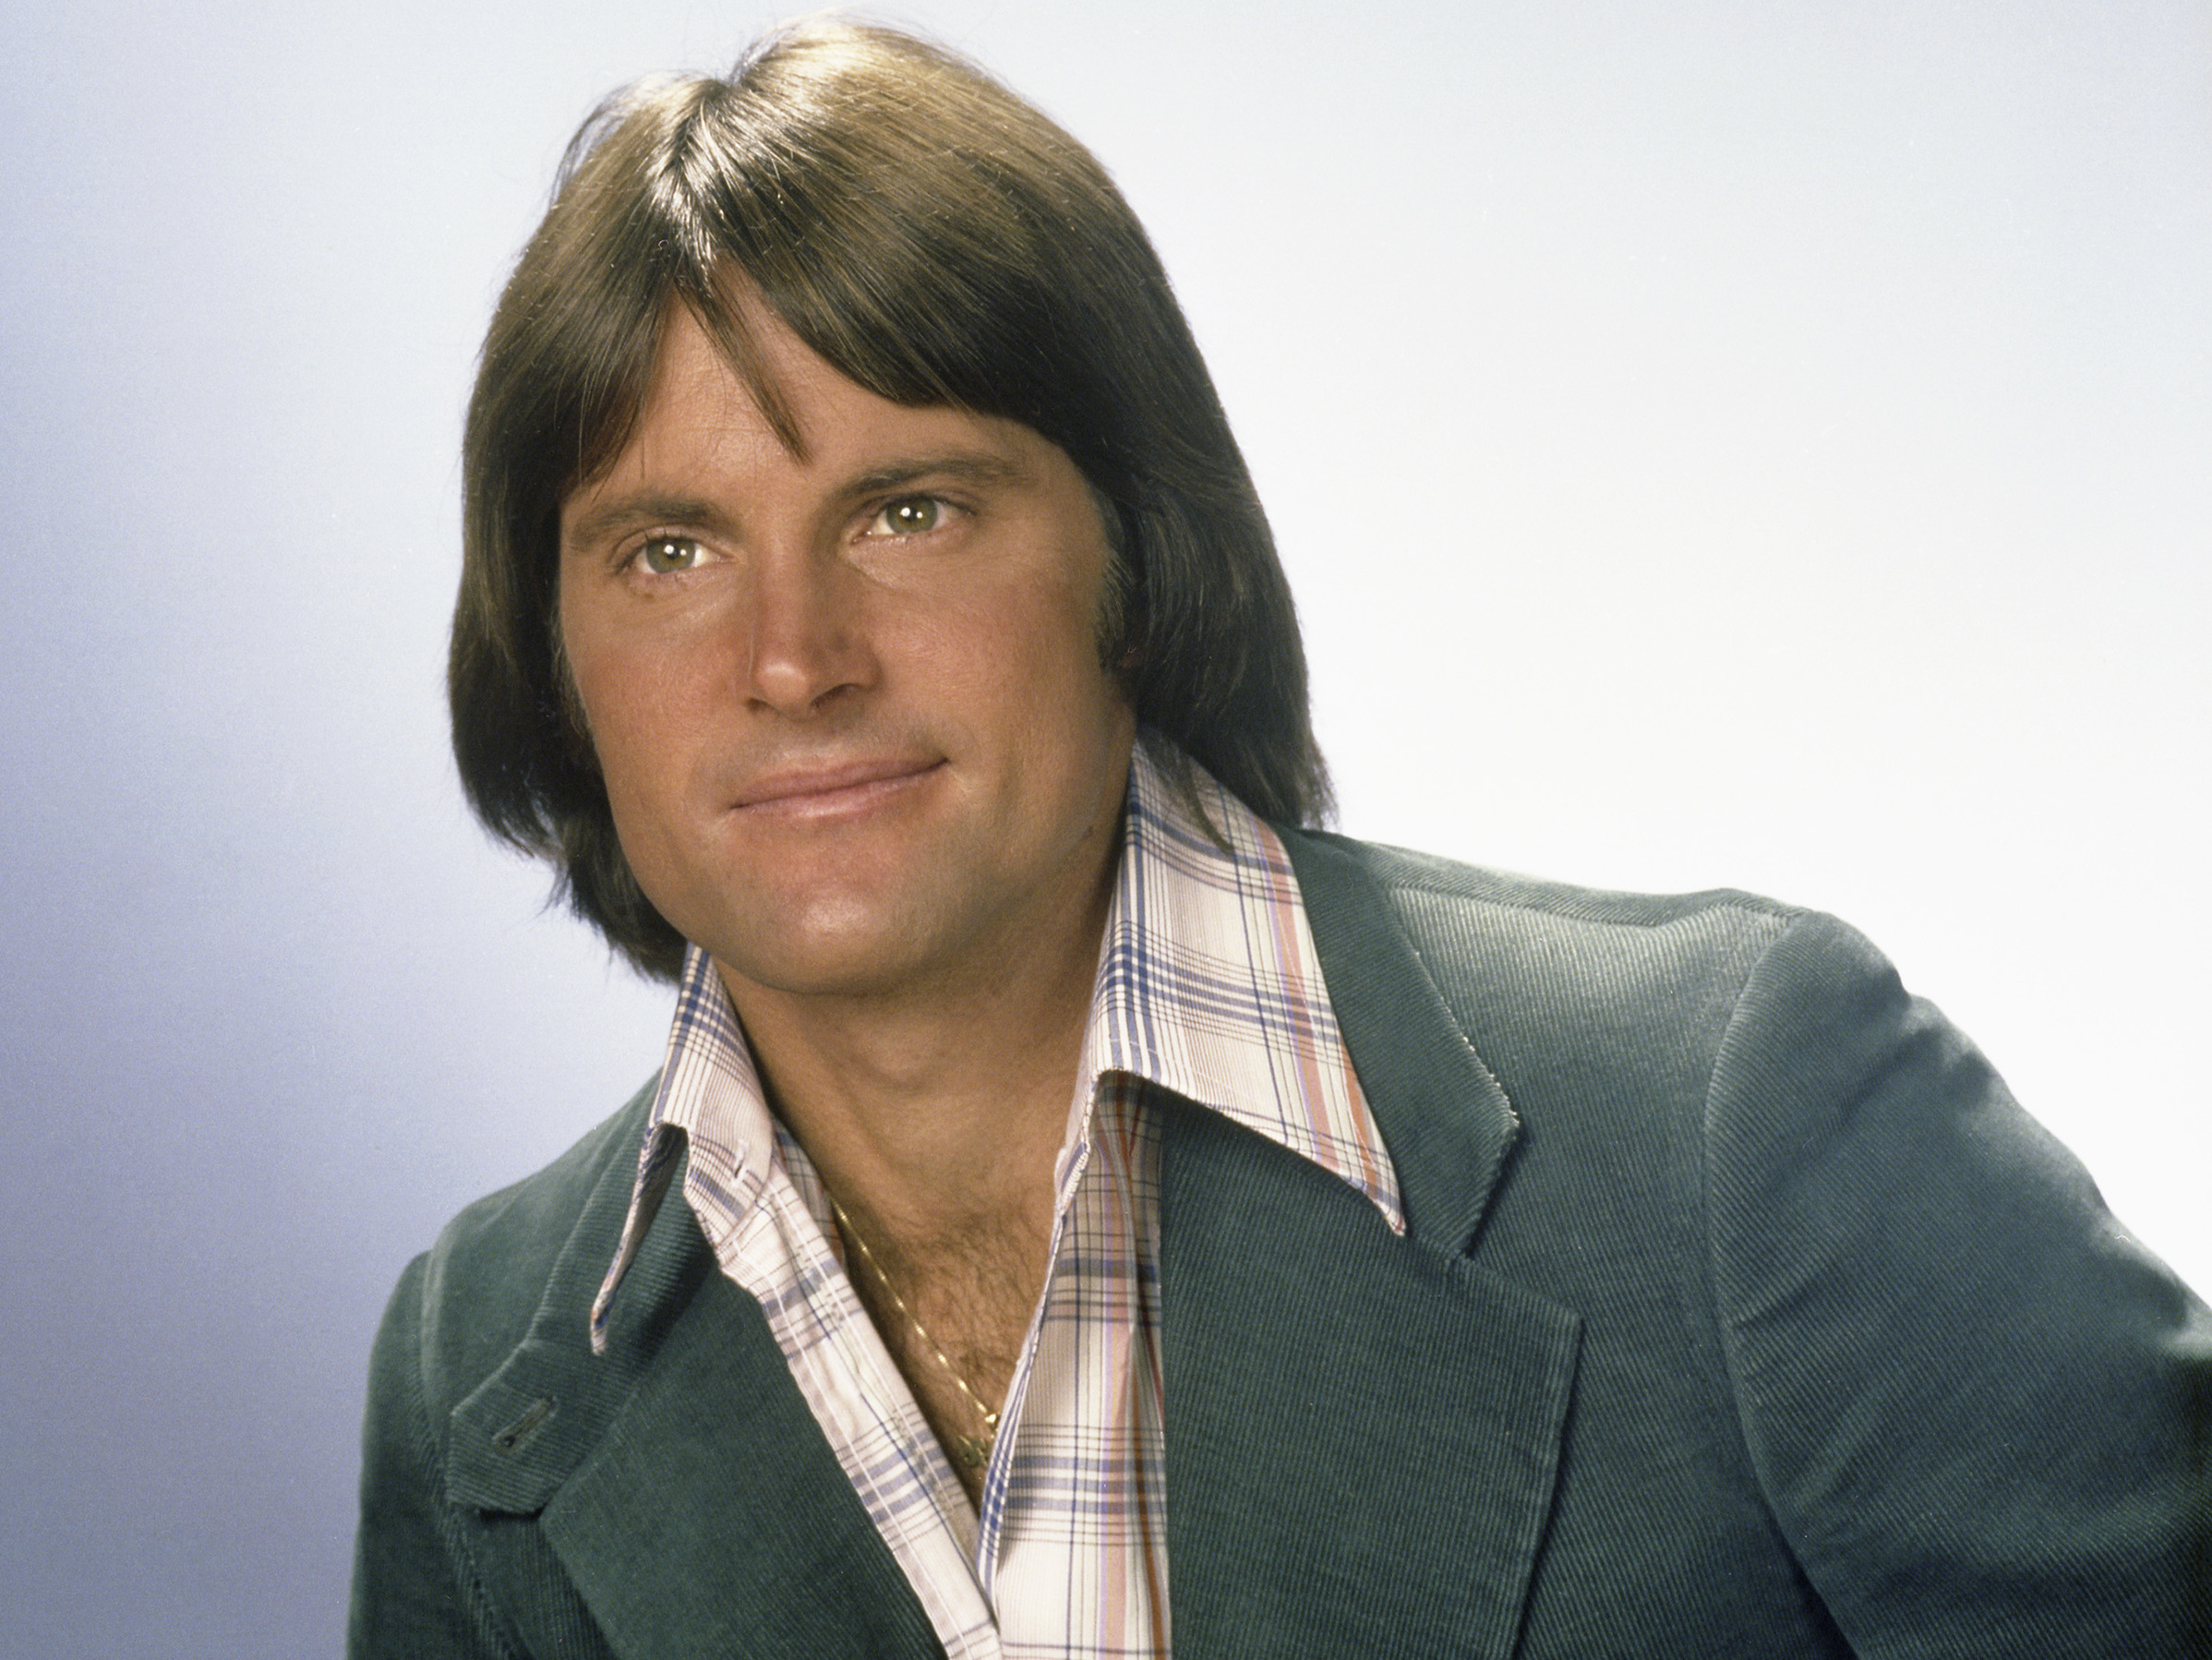 Bruce Jenner comes out as transgender, says 'I am a woman ... Bruce Jenner